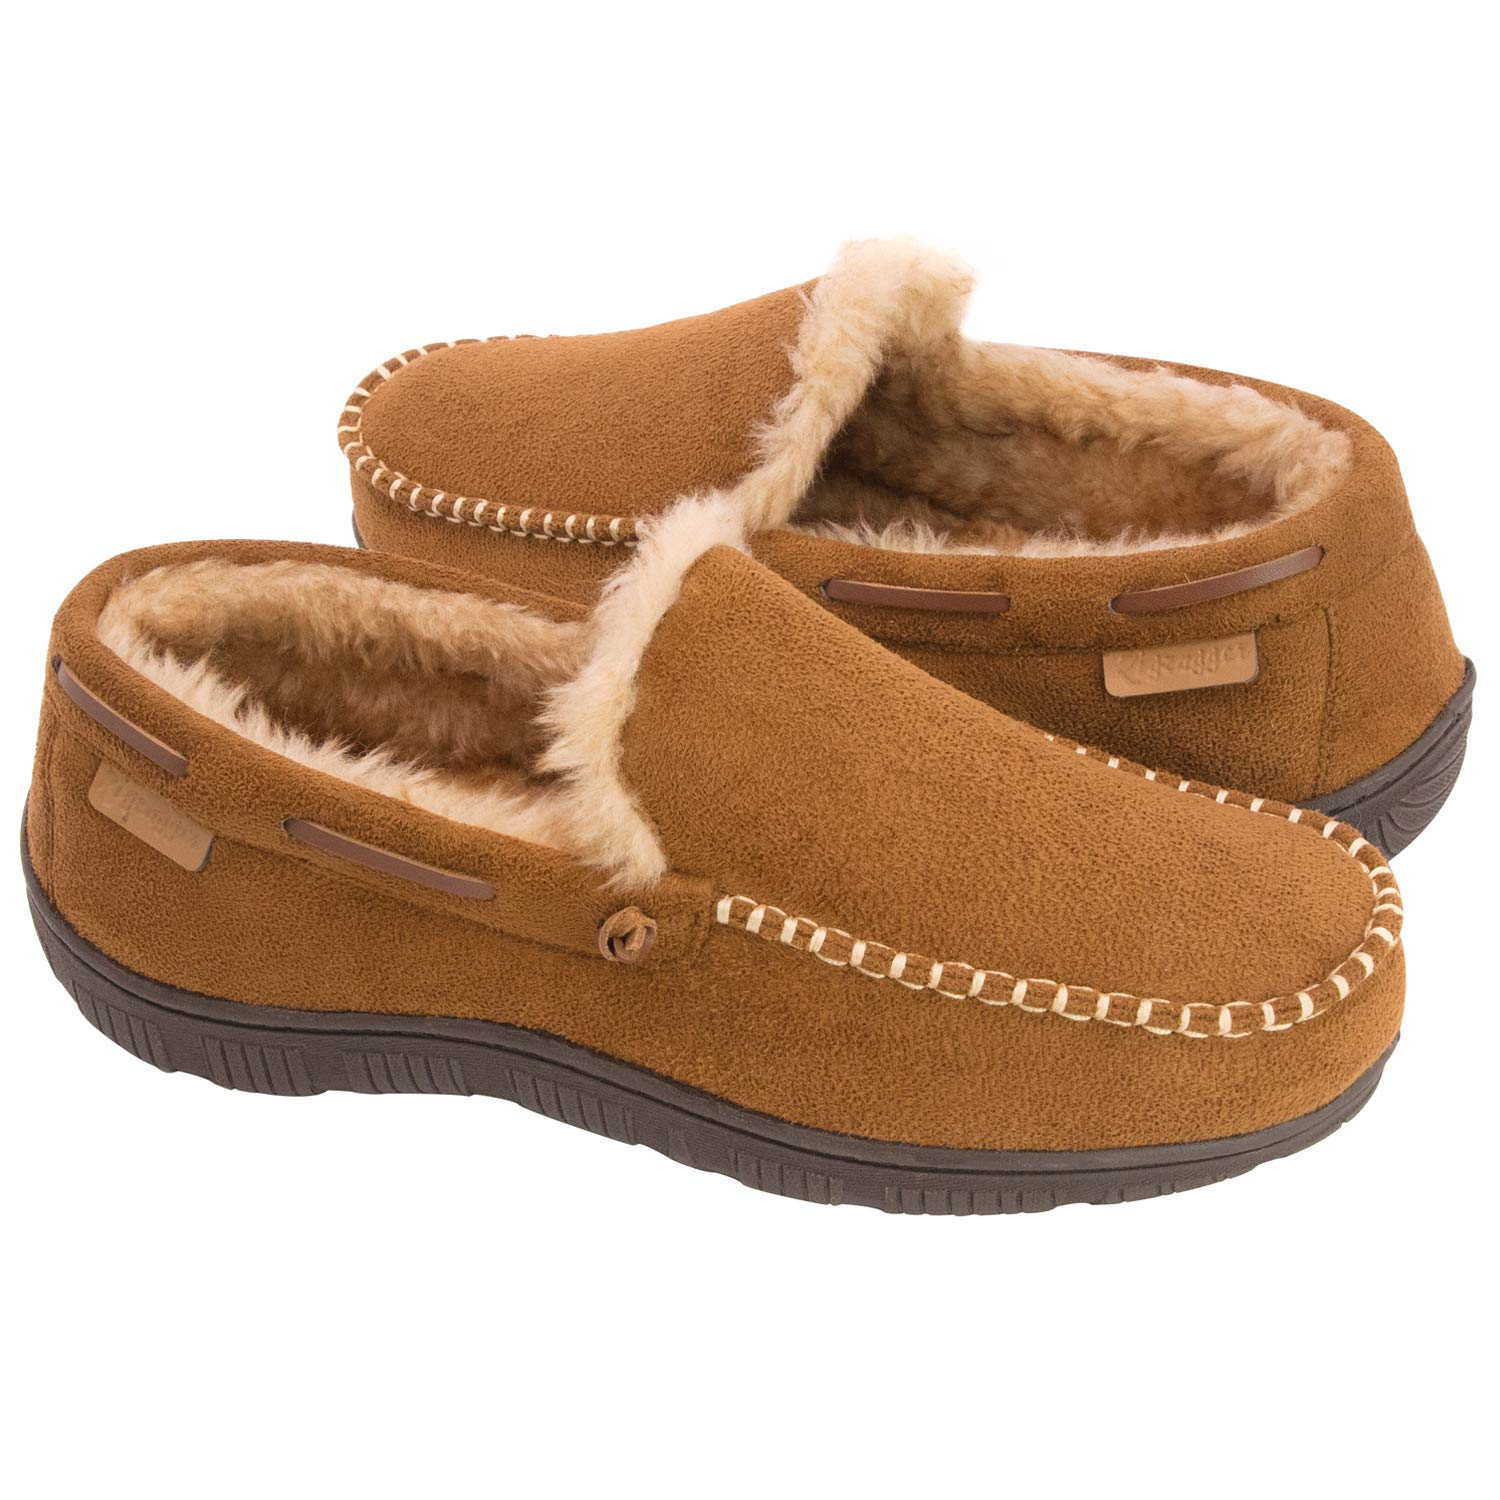 Zigzagger Men's Microsuede Moccasin Slippers w/Indoor Outdoor Nonslip Sole